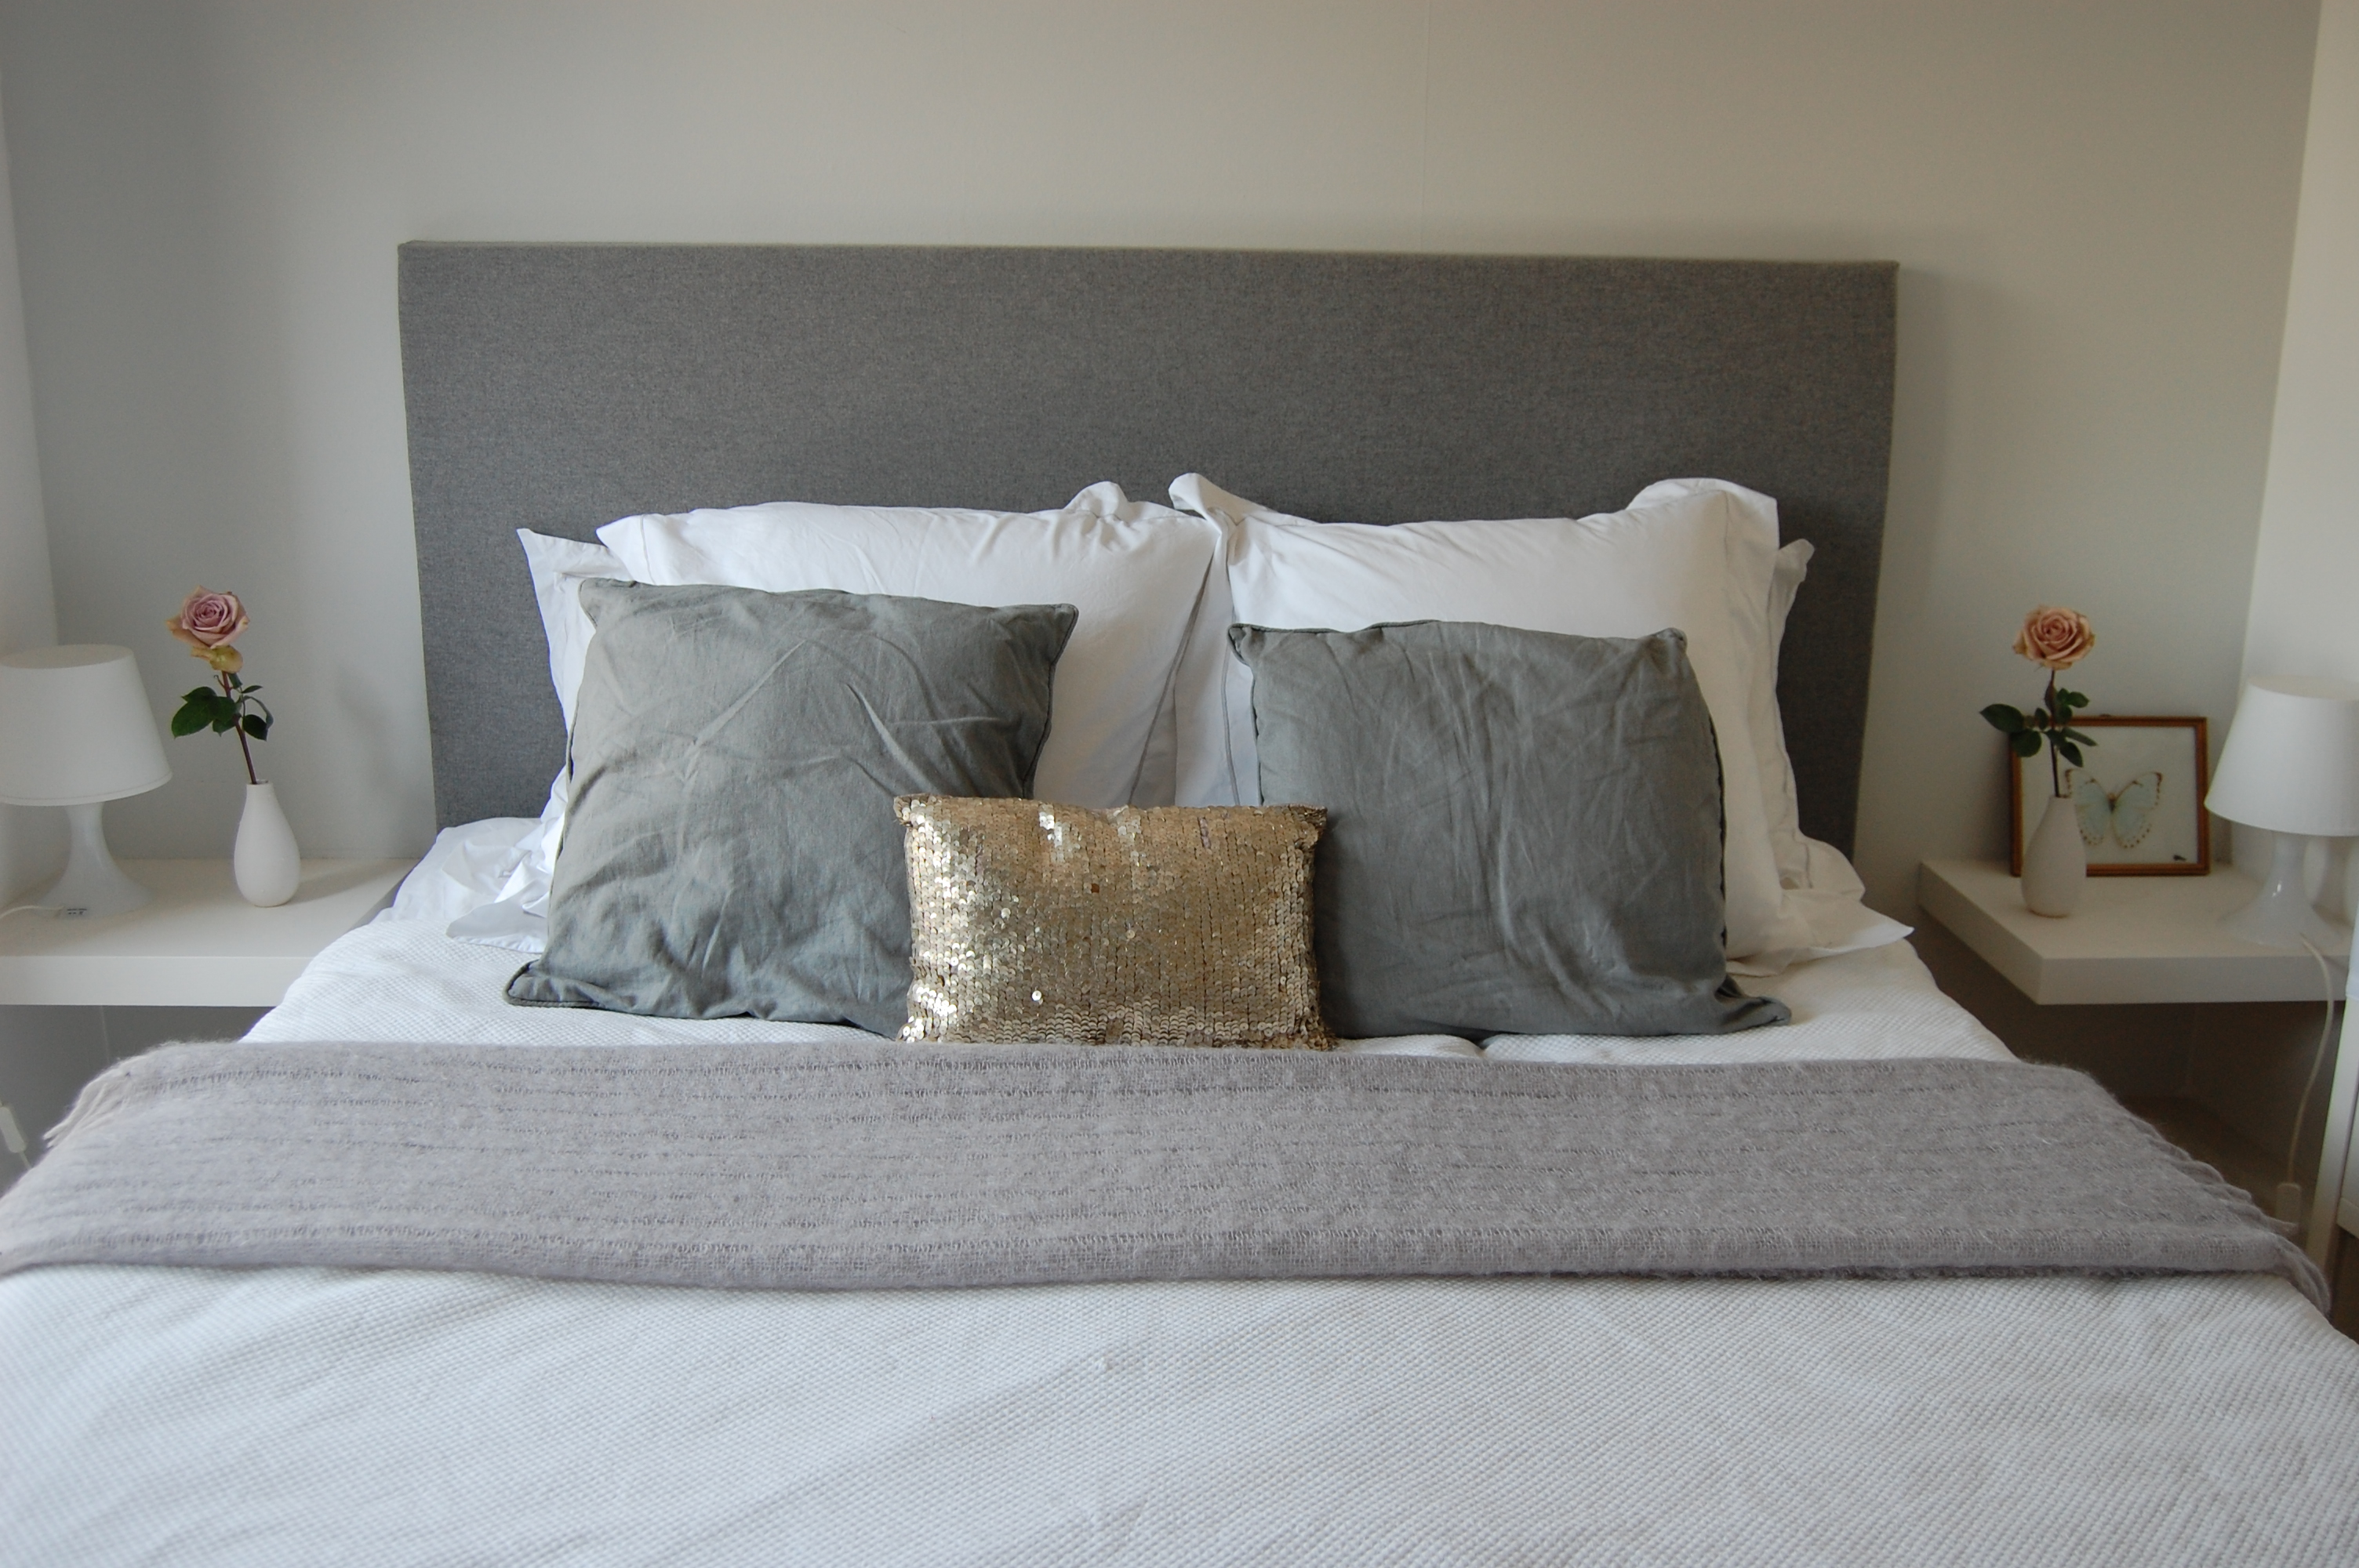 Tweepersoonsbed Boxspring How To Make A Headboard